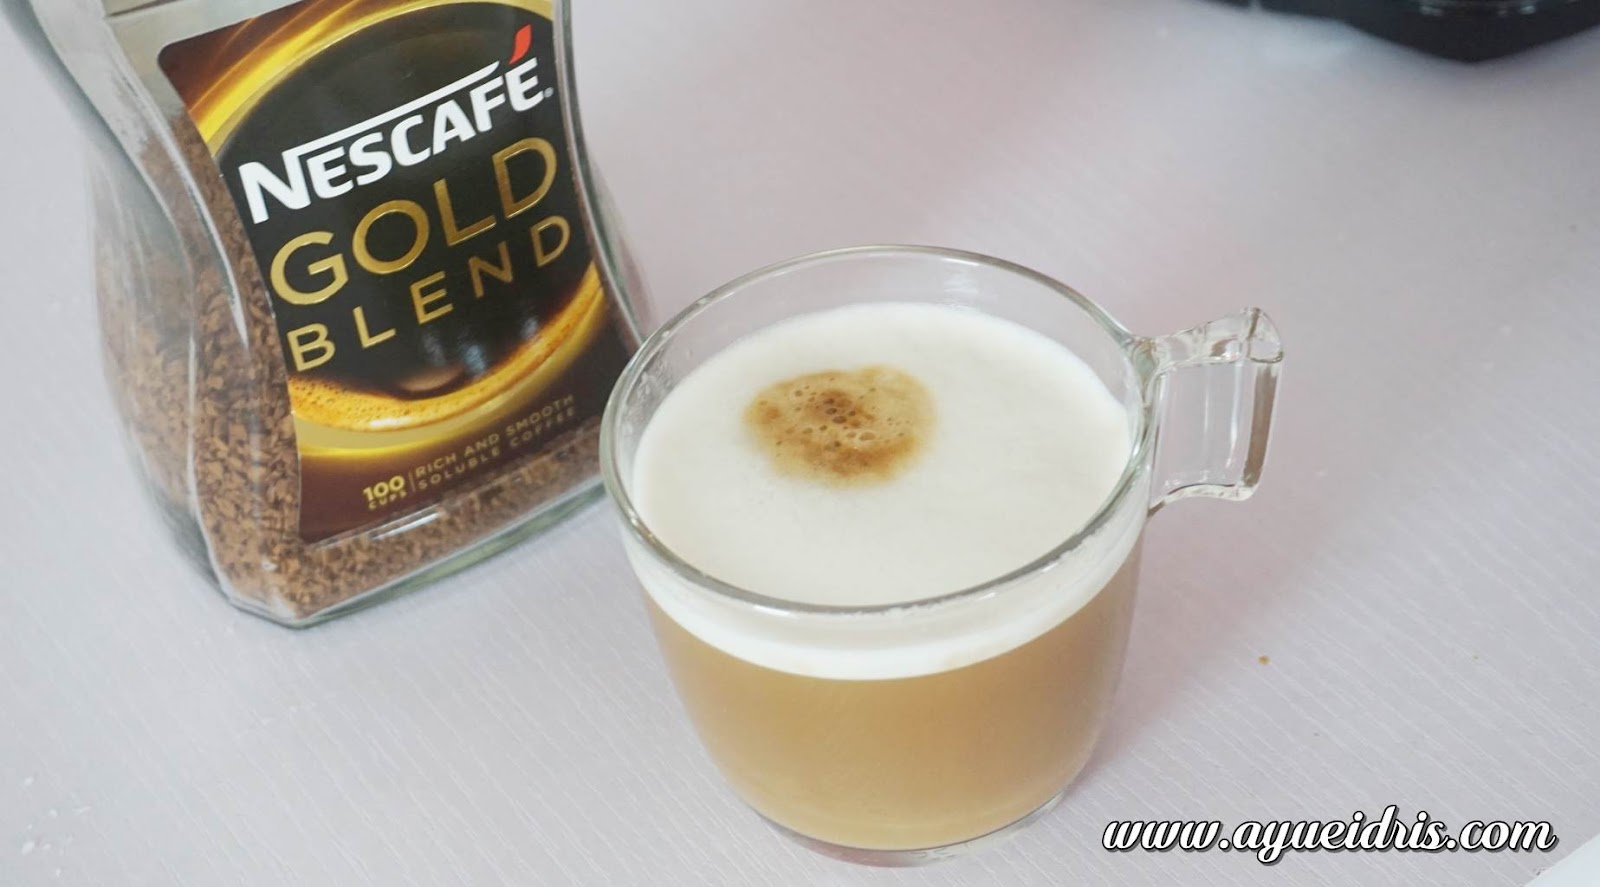 Nescafe Gold Barista Coffee Machine cara guna harga (26).JPG